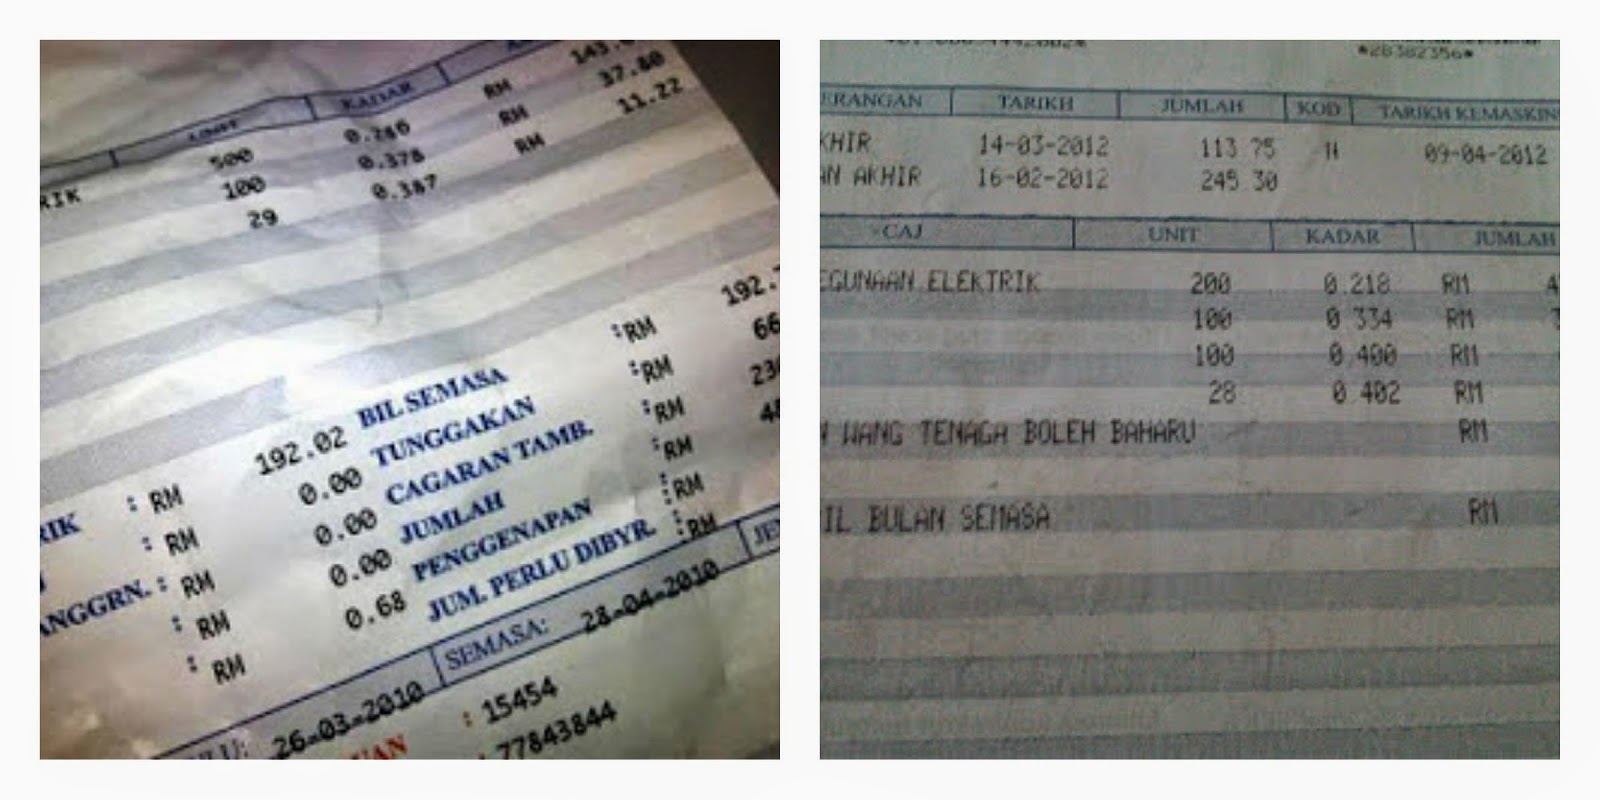 Malaysia Electricity Bill 2008 and 2012